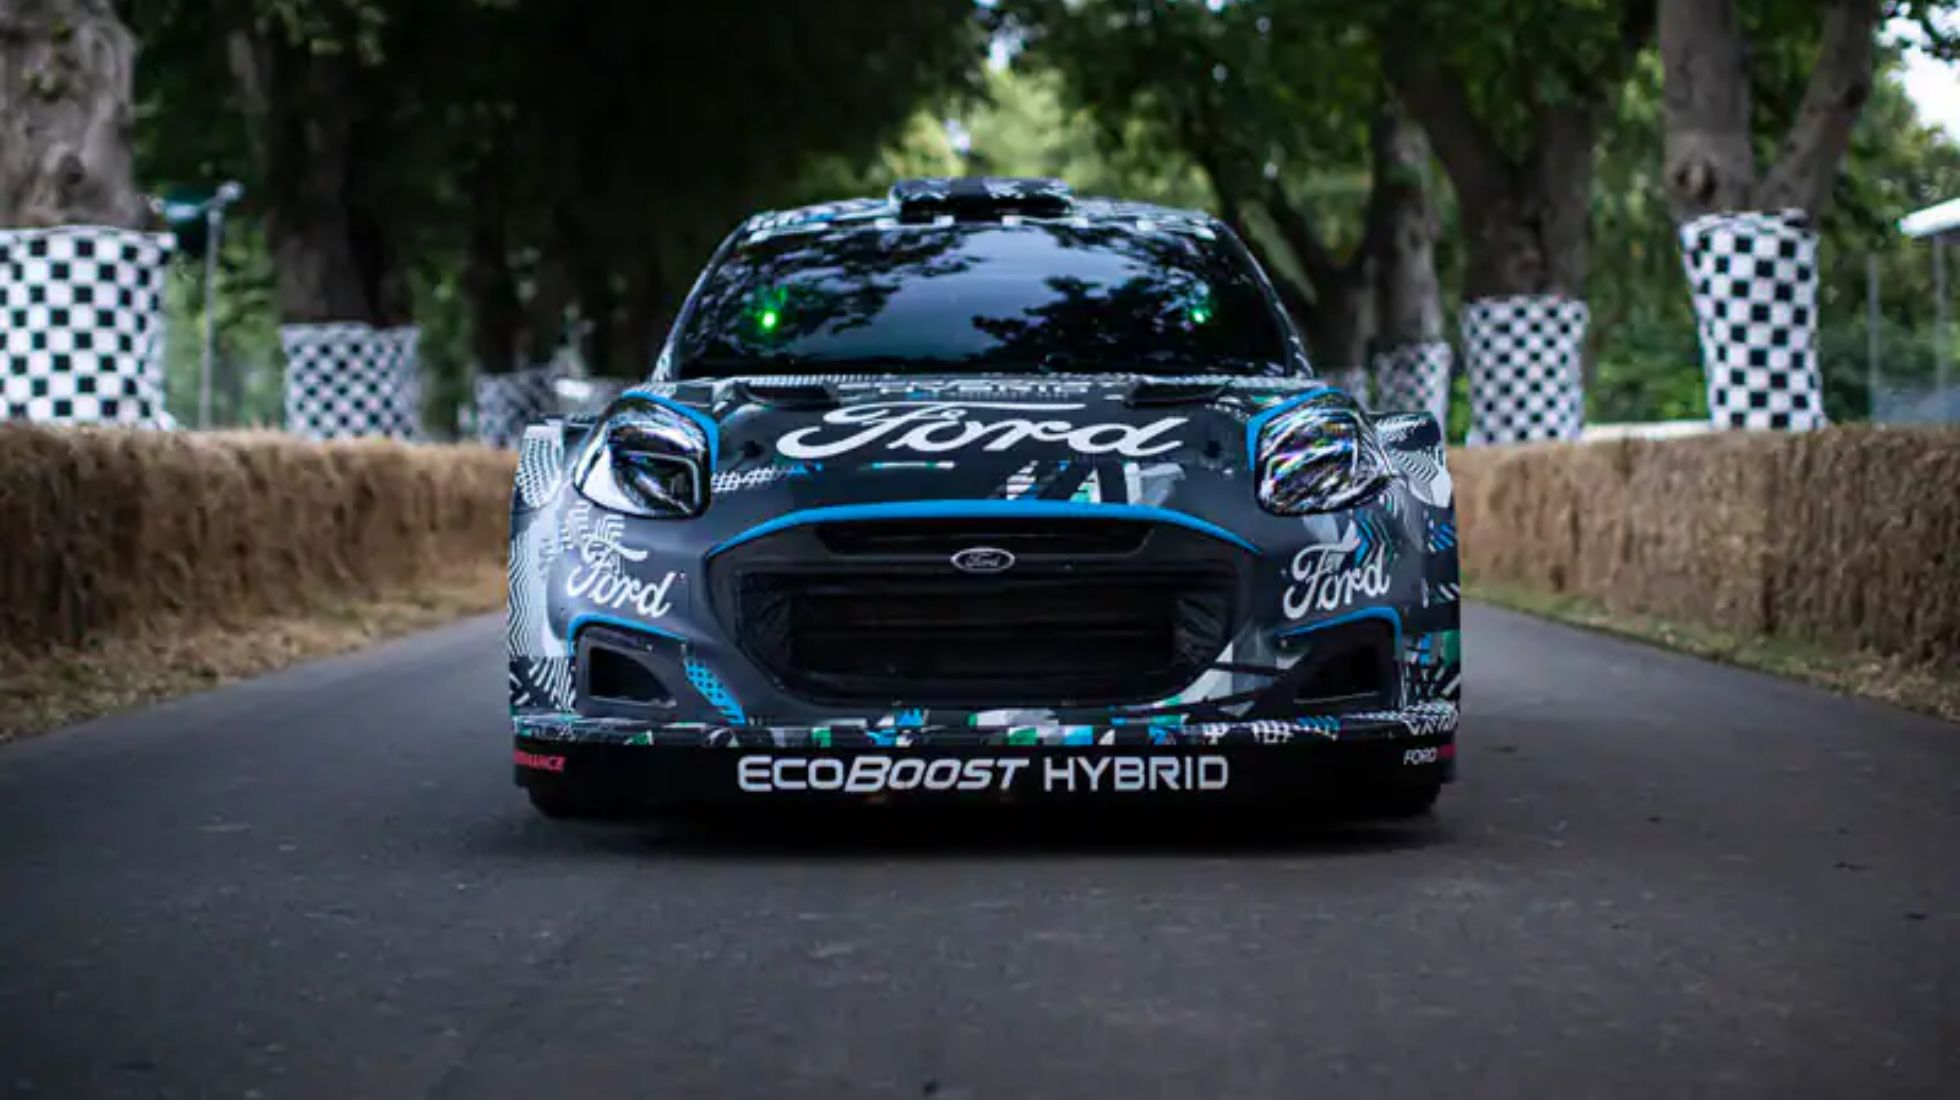 Craig Breen and Paul Nagel join the M-Sport Ford World Rally Championship team